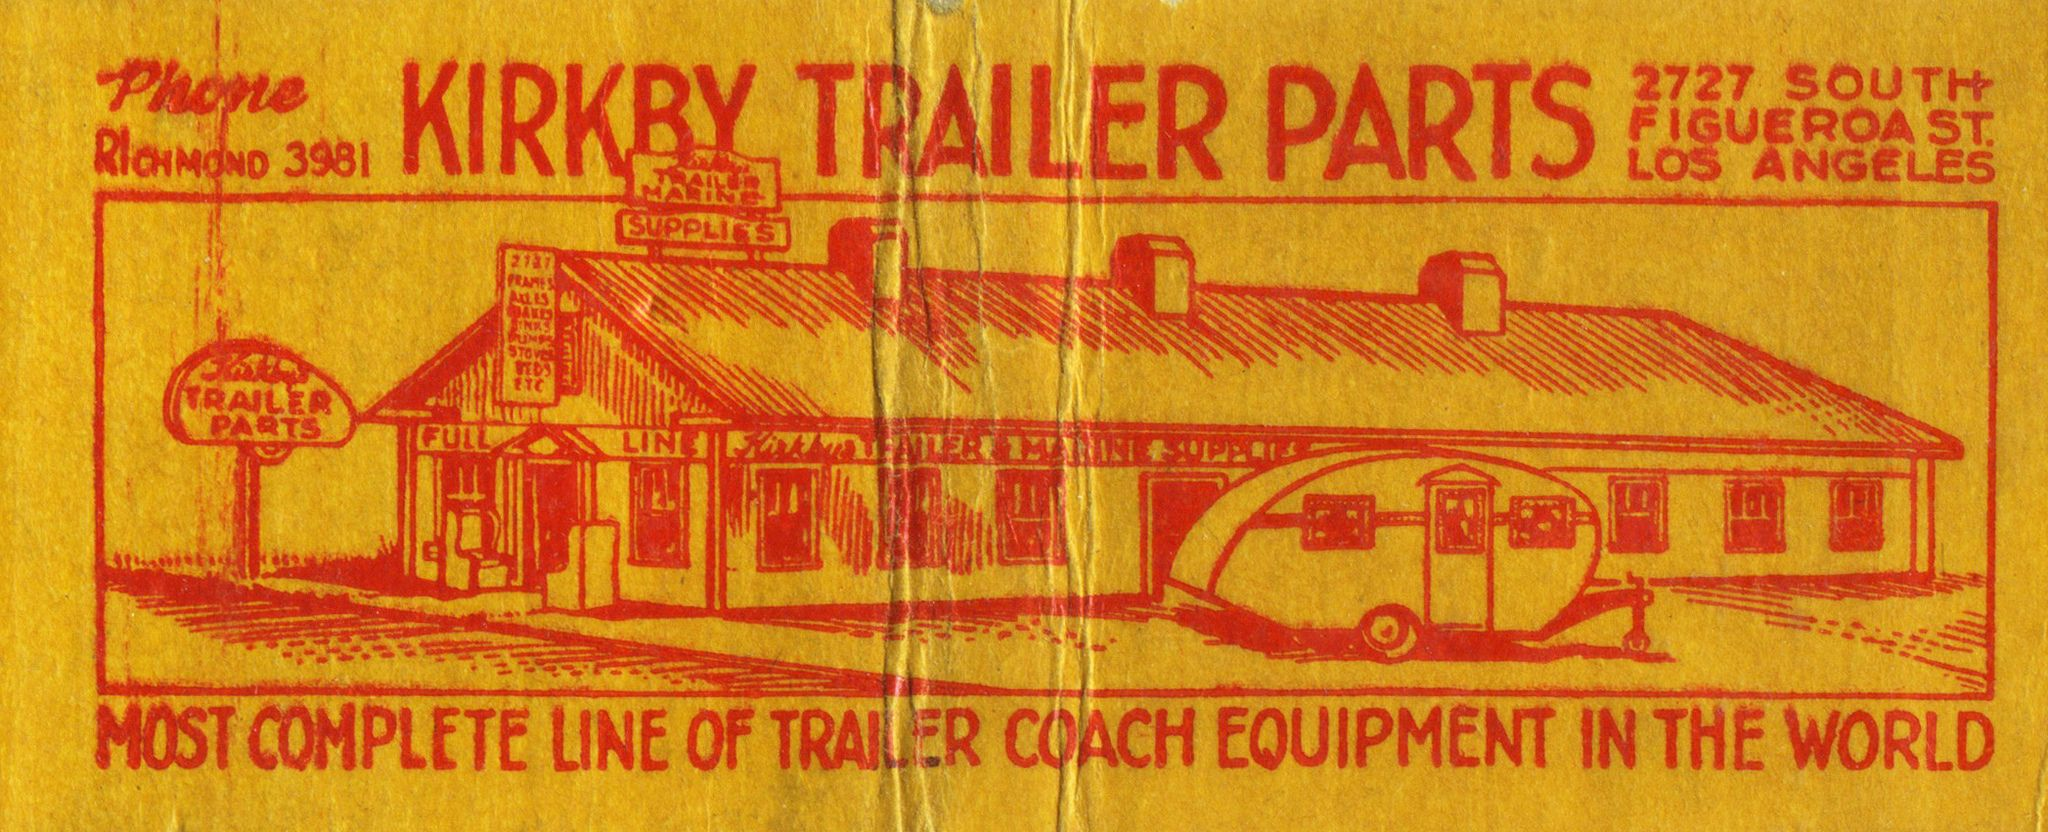 Kirkby Trailer Parts | Flickr - Photo Sharing!